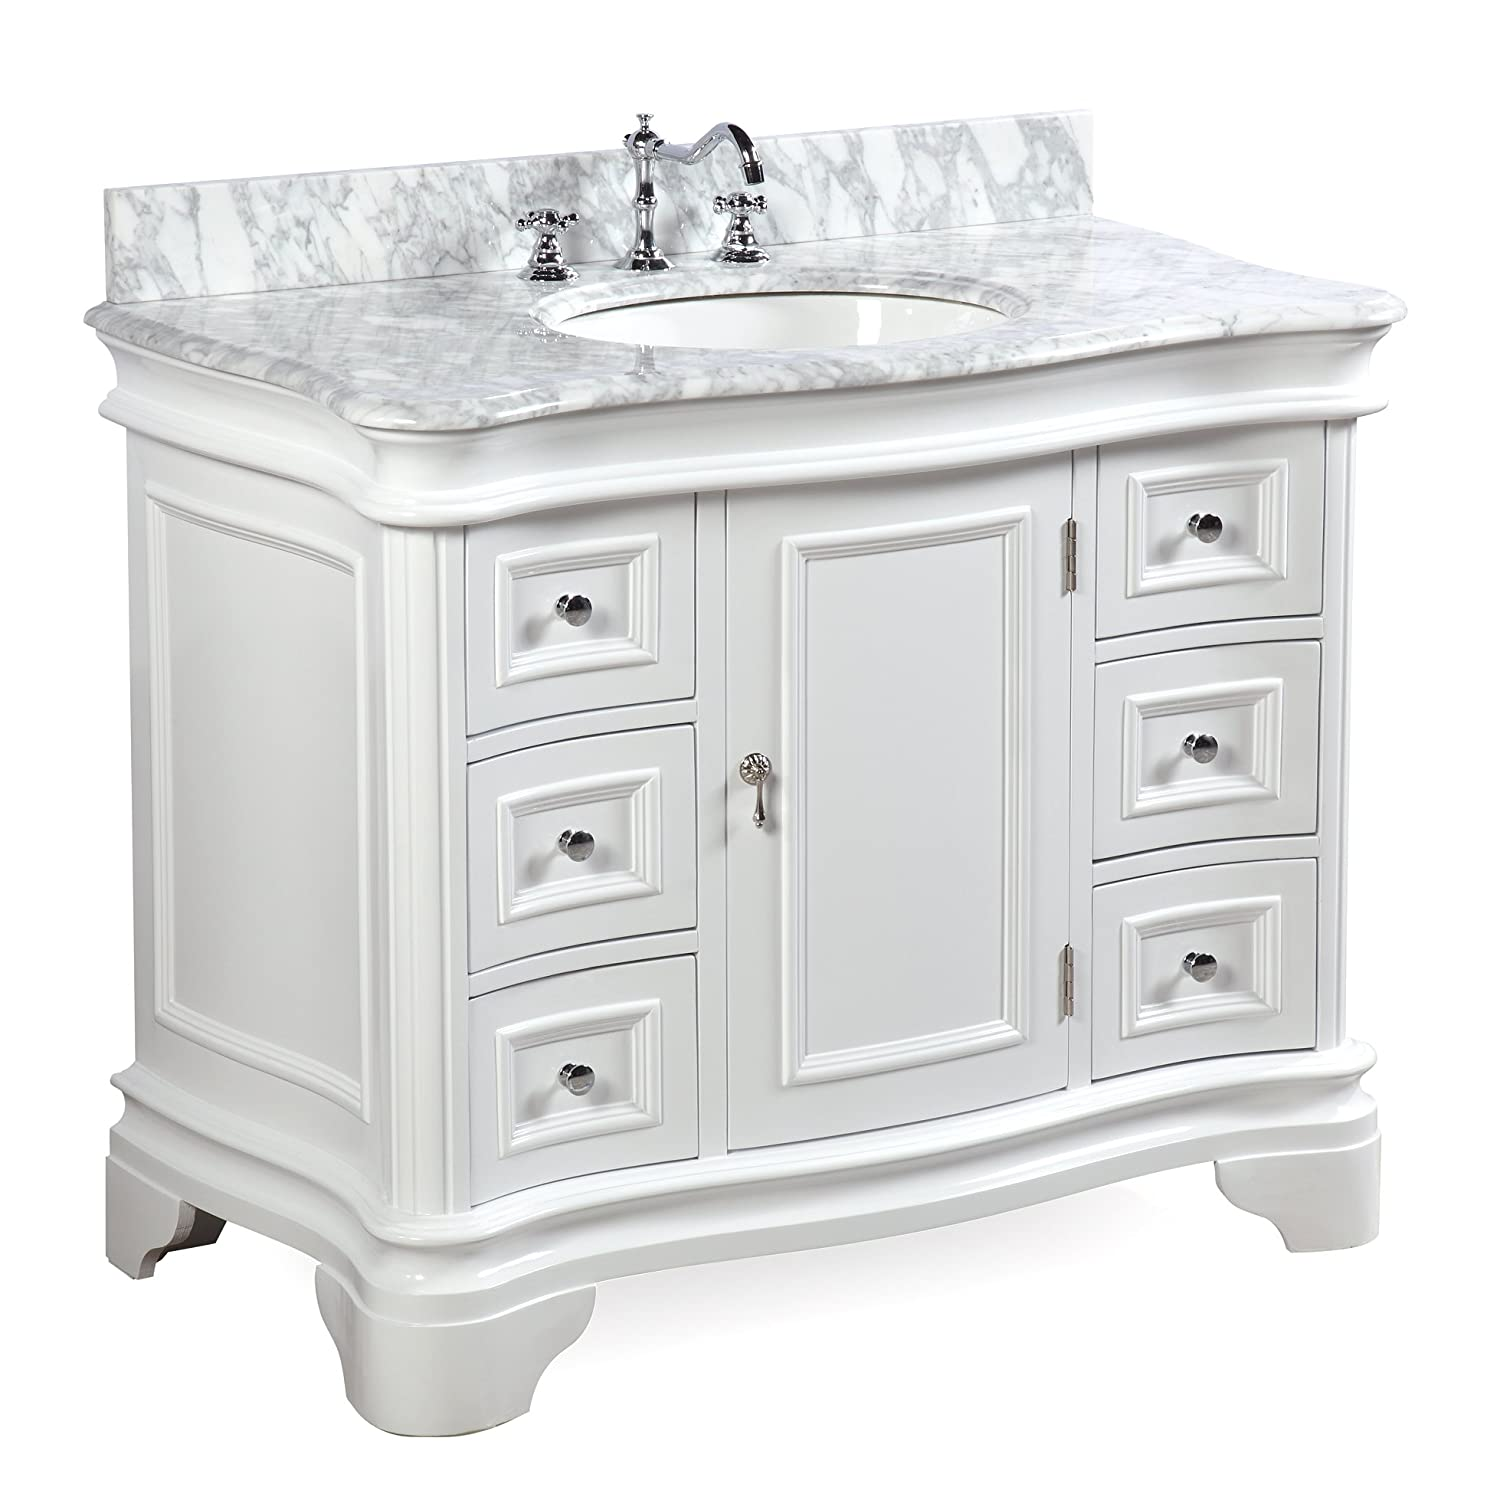 Katherine 42 inch Bathroom Vanity Carrara White Includes White